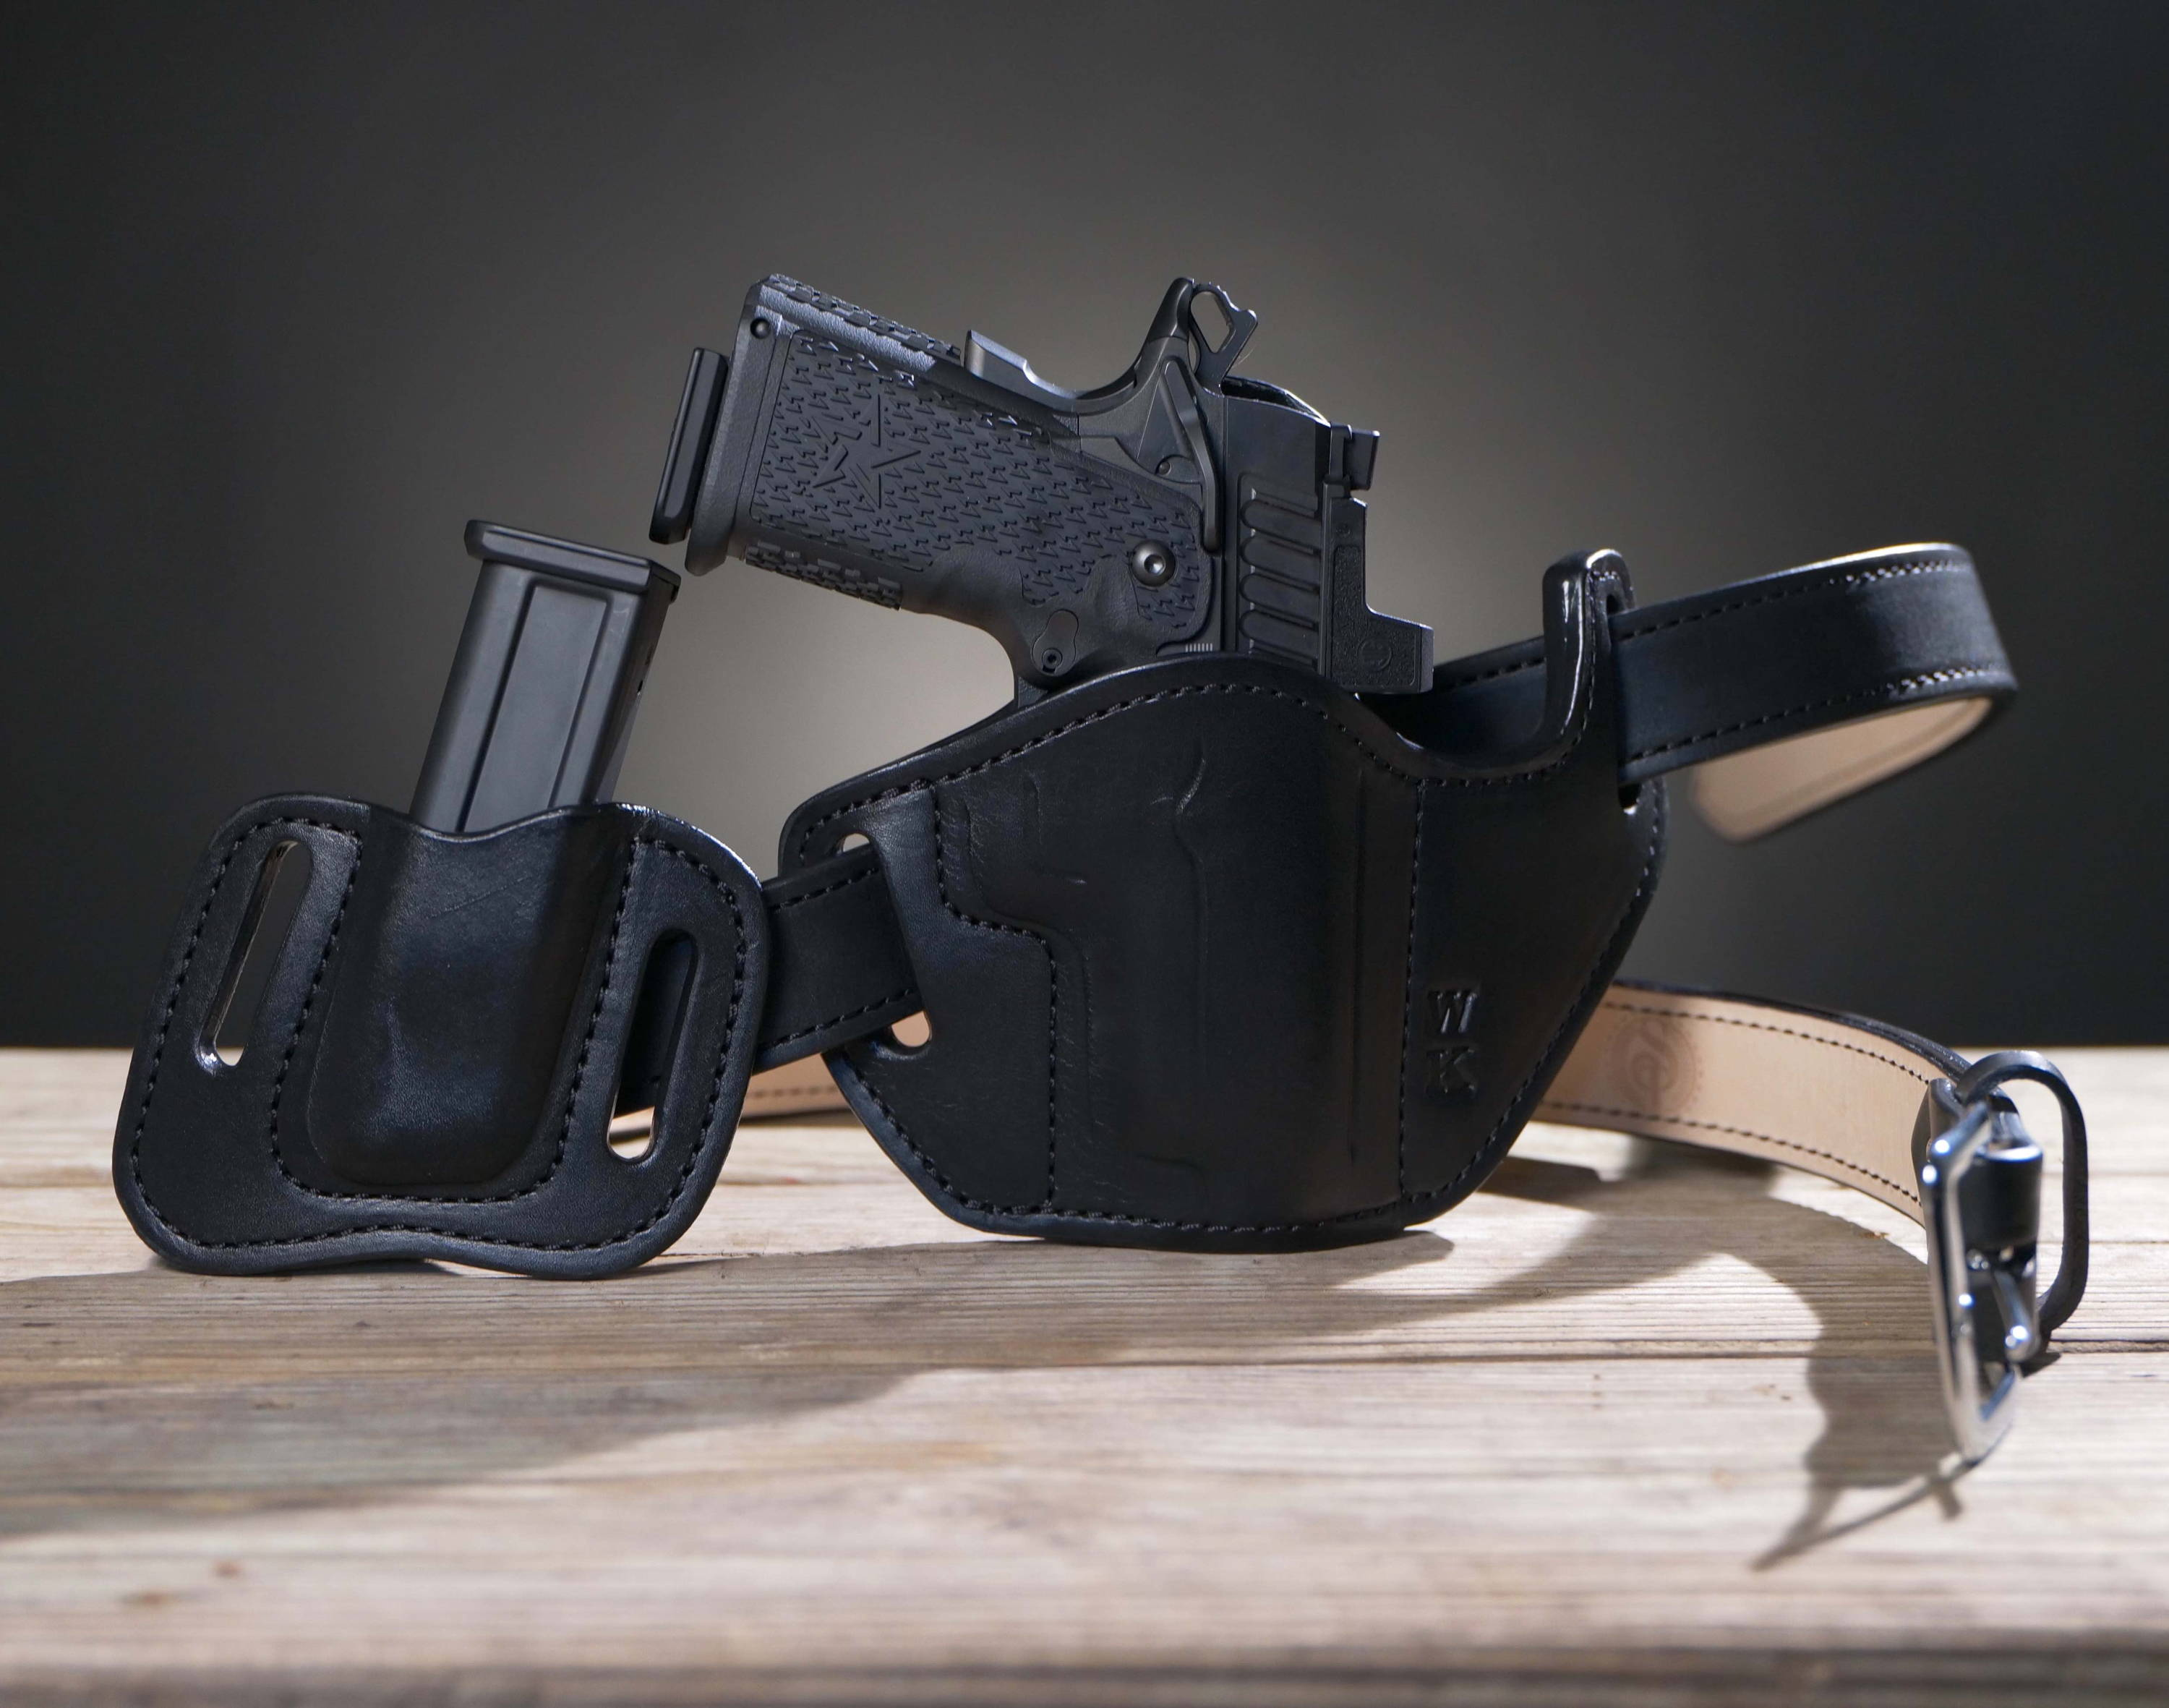 holster for red dot sight